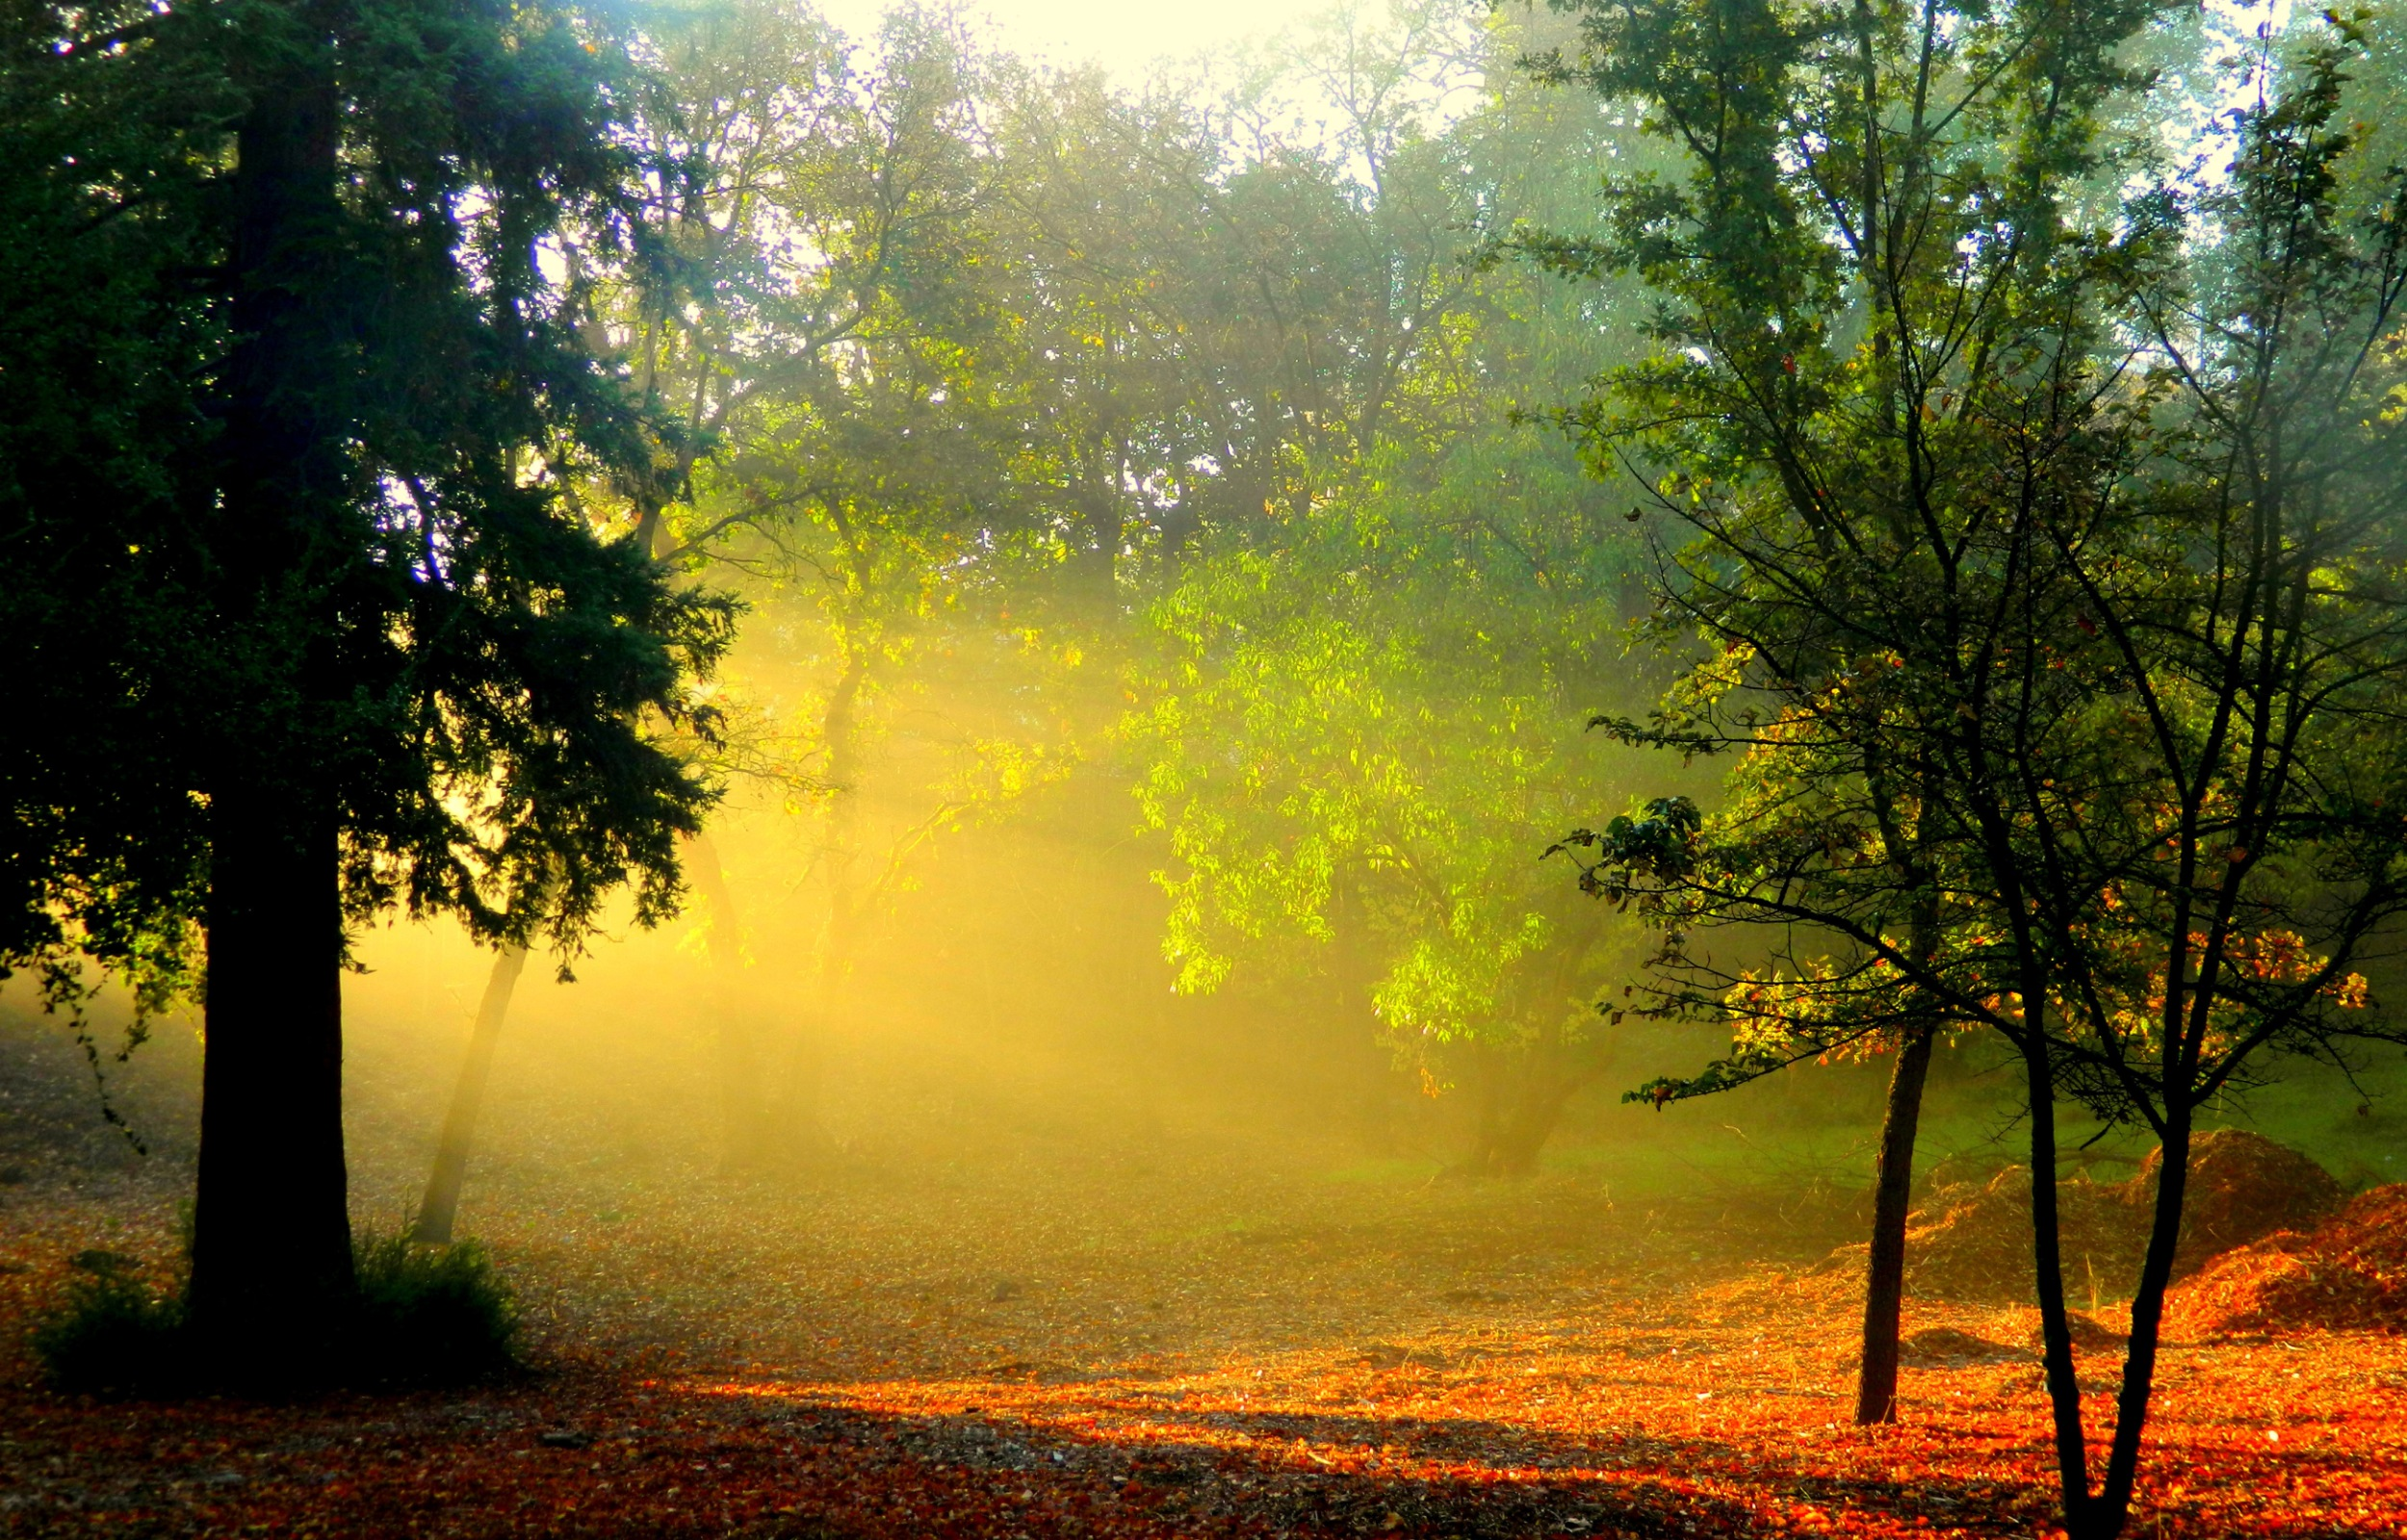 Morning sunlight and smoke in forest 2500 x 1600 download close